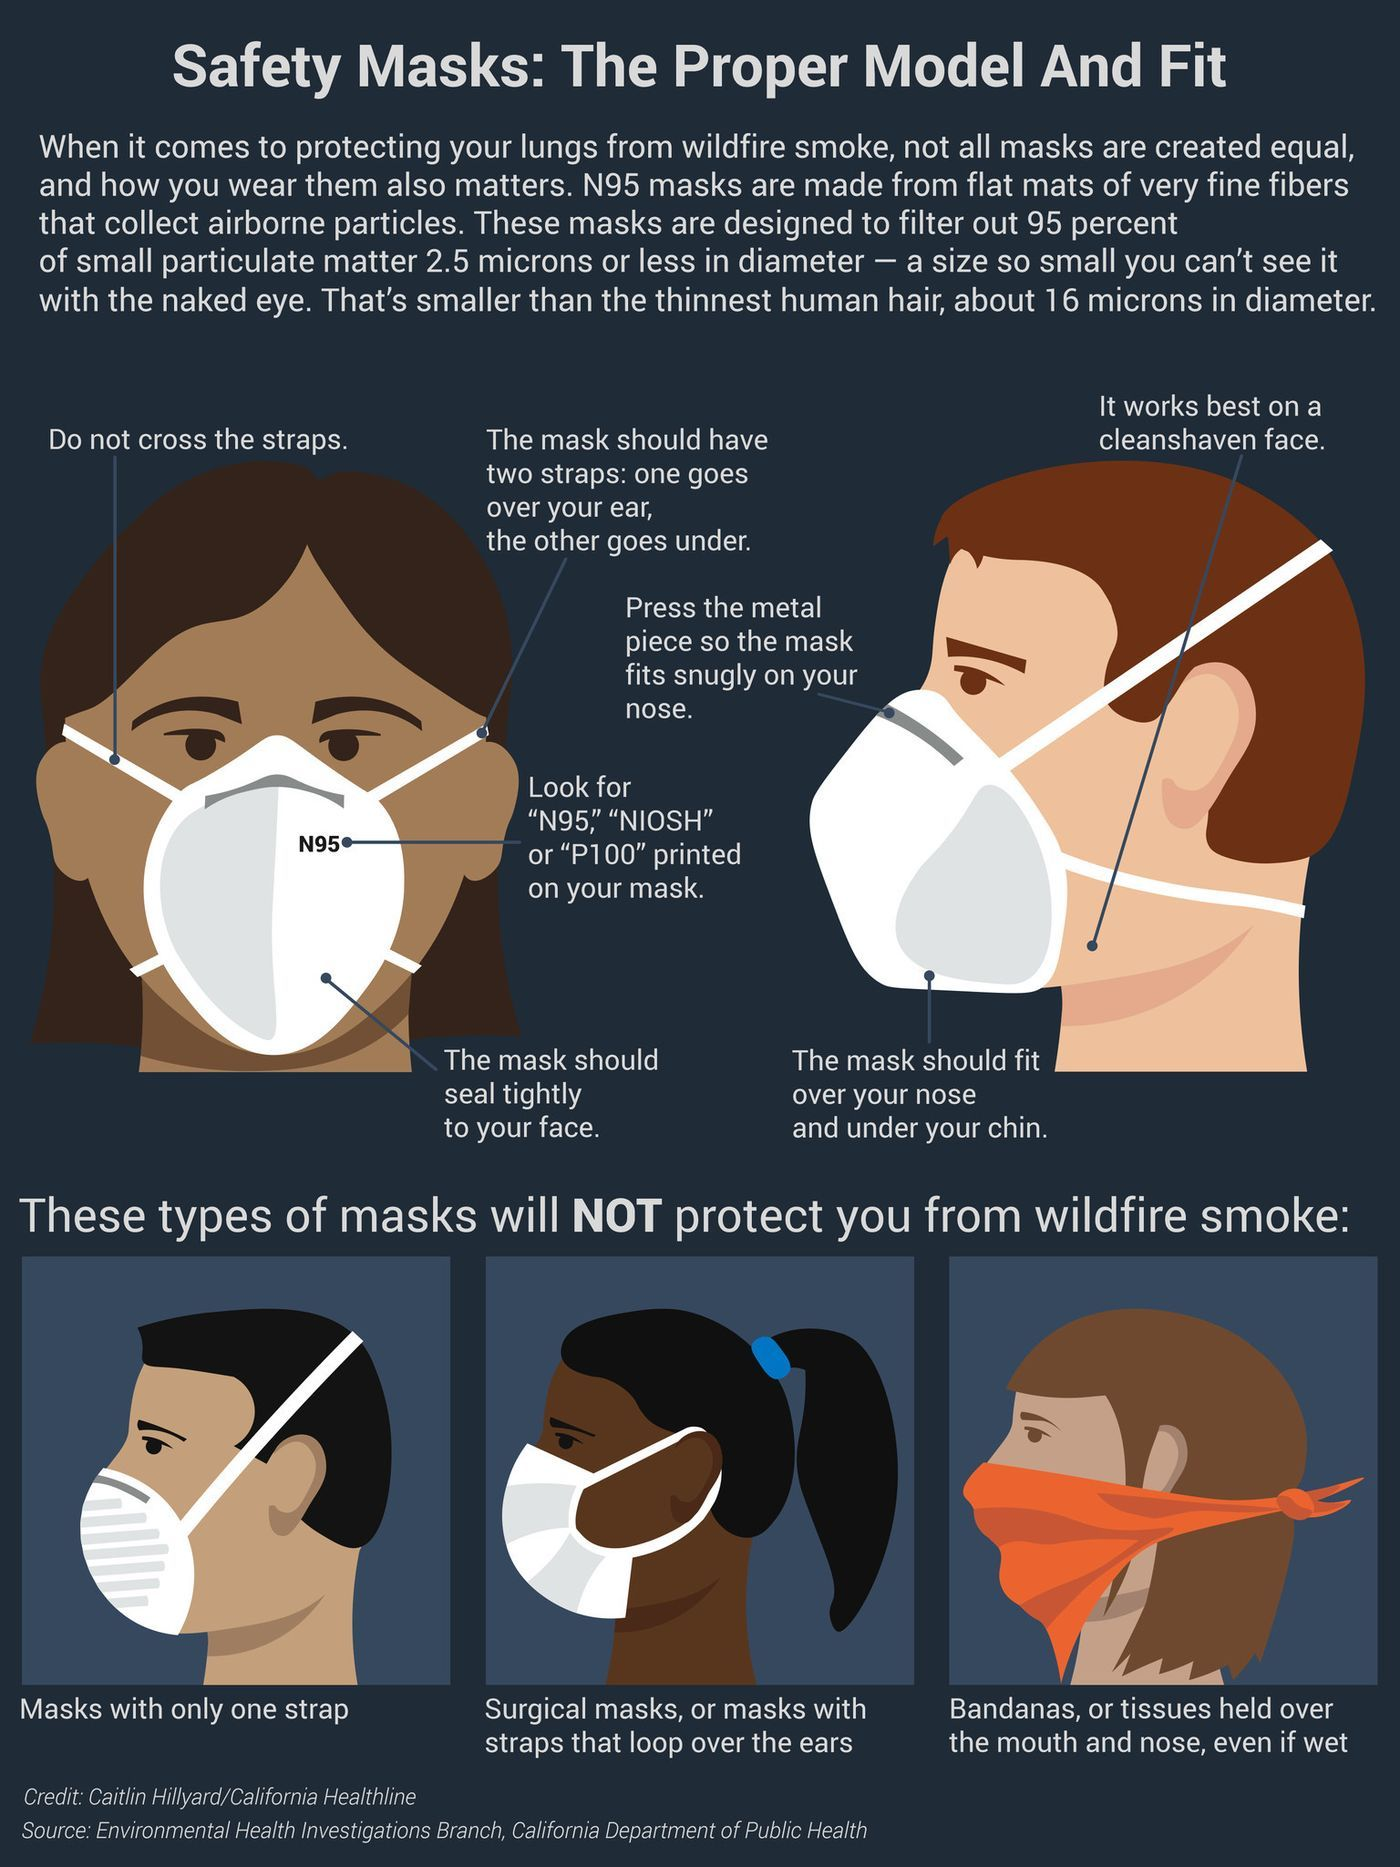 To protect your lungs from wildfire smoke, the mask you